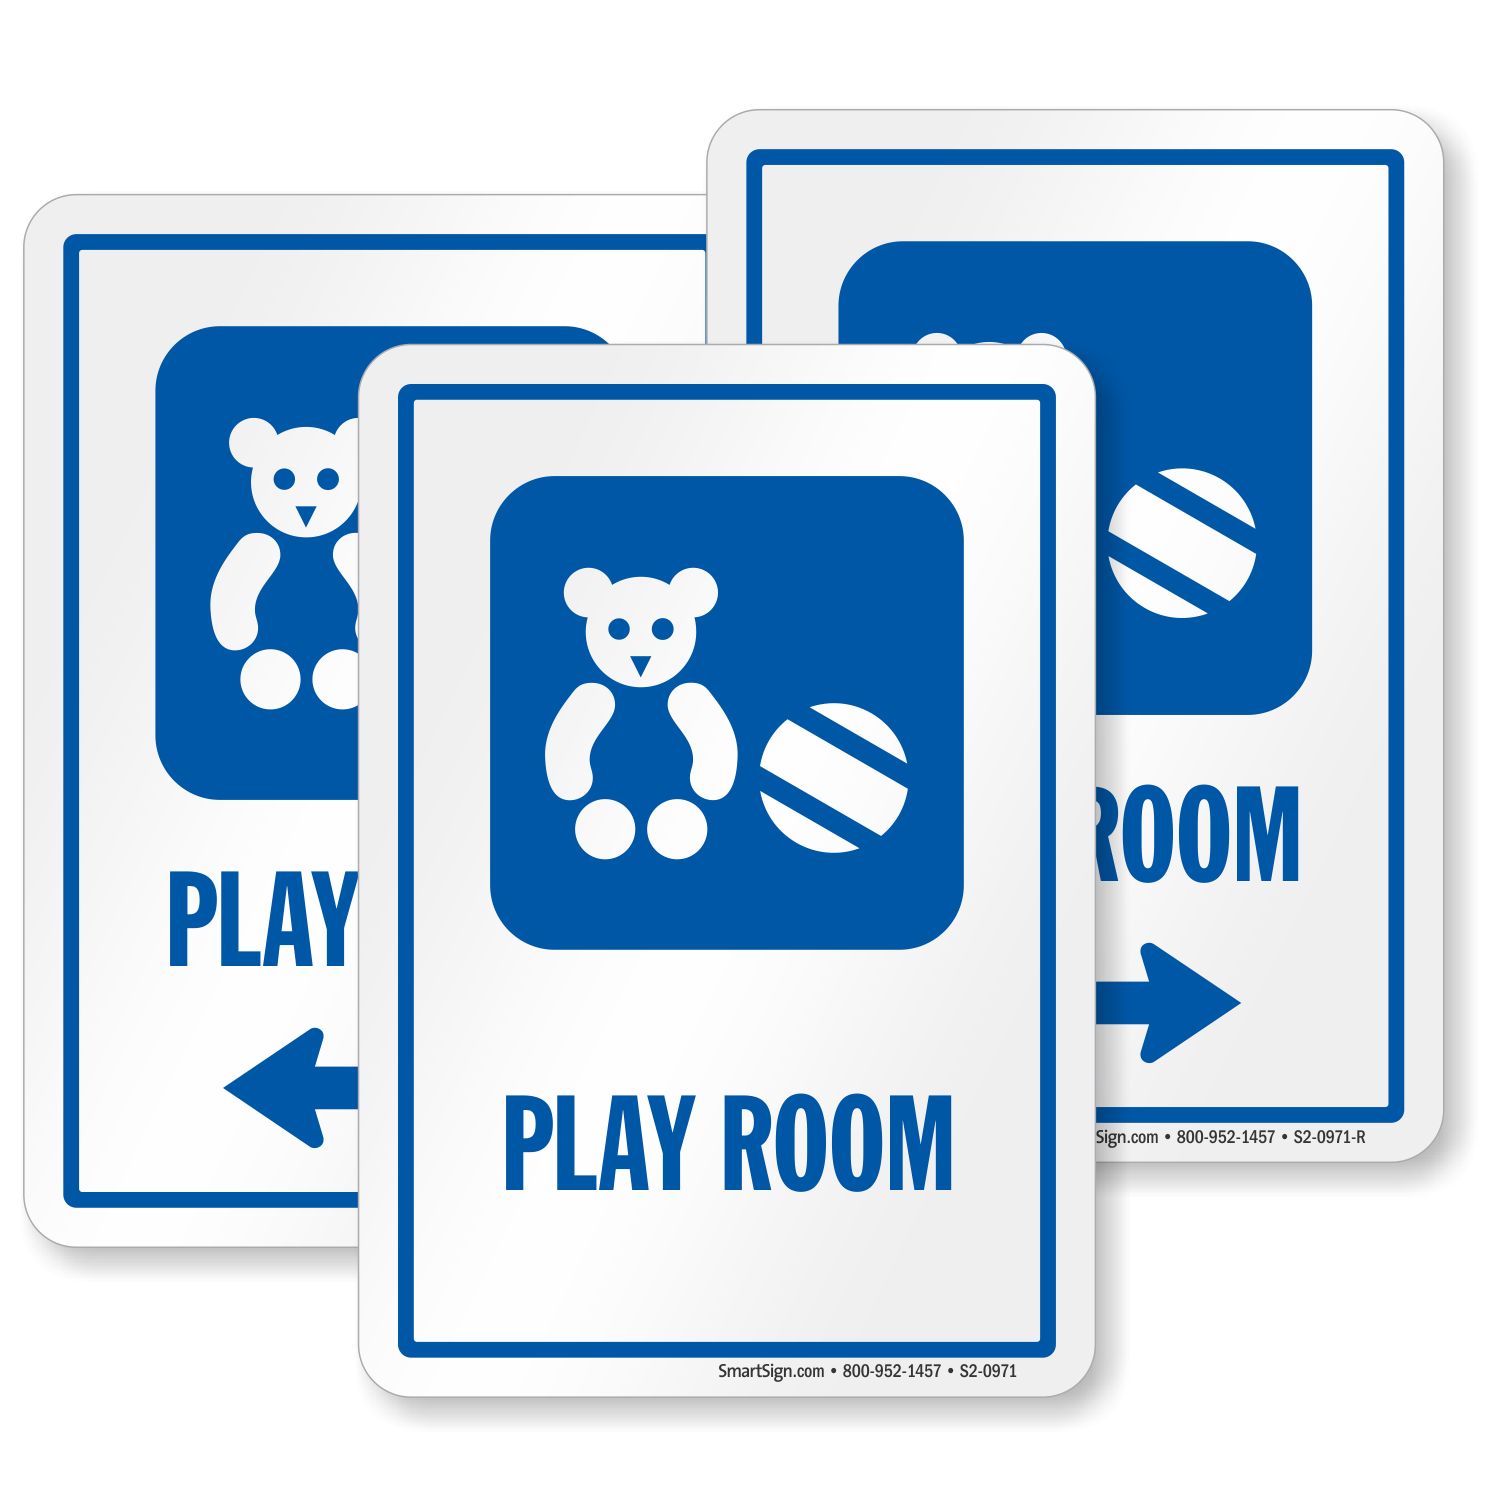 Play Room Signs  Play Room Door Signs. Cdc Vital Signs Of Stroke. Fresh Cut Flower Signs. Used Hospital Signs. Movie Character Signs. Doesn Signs. Tpa Signs Of Stroke. Bbq Signs Of Stroke. Library Hour Signs Of Stroke